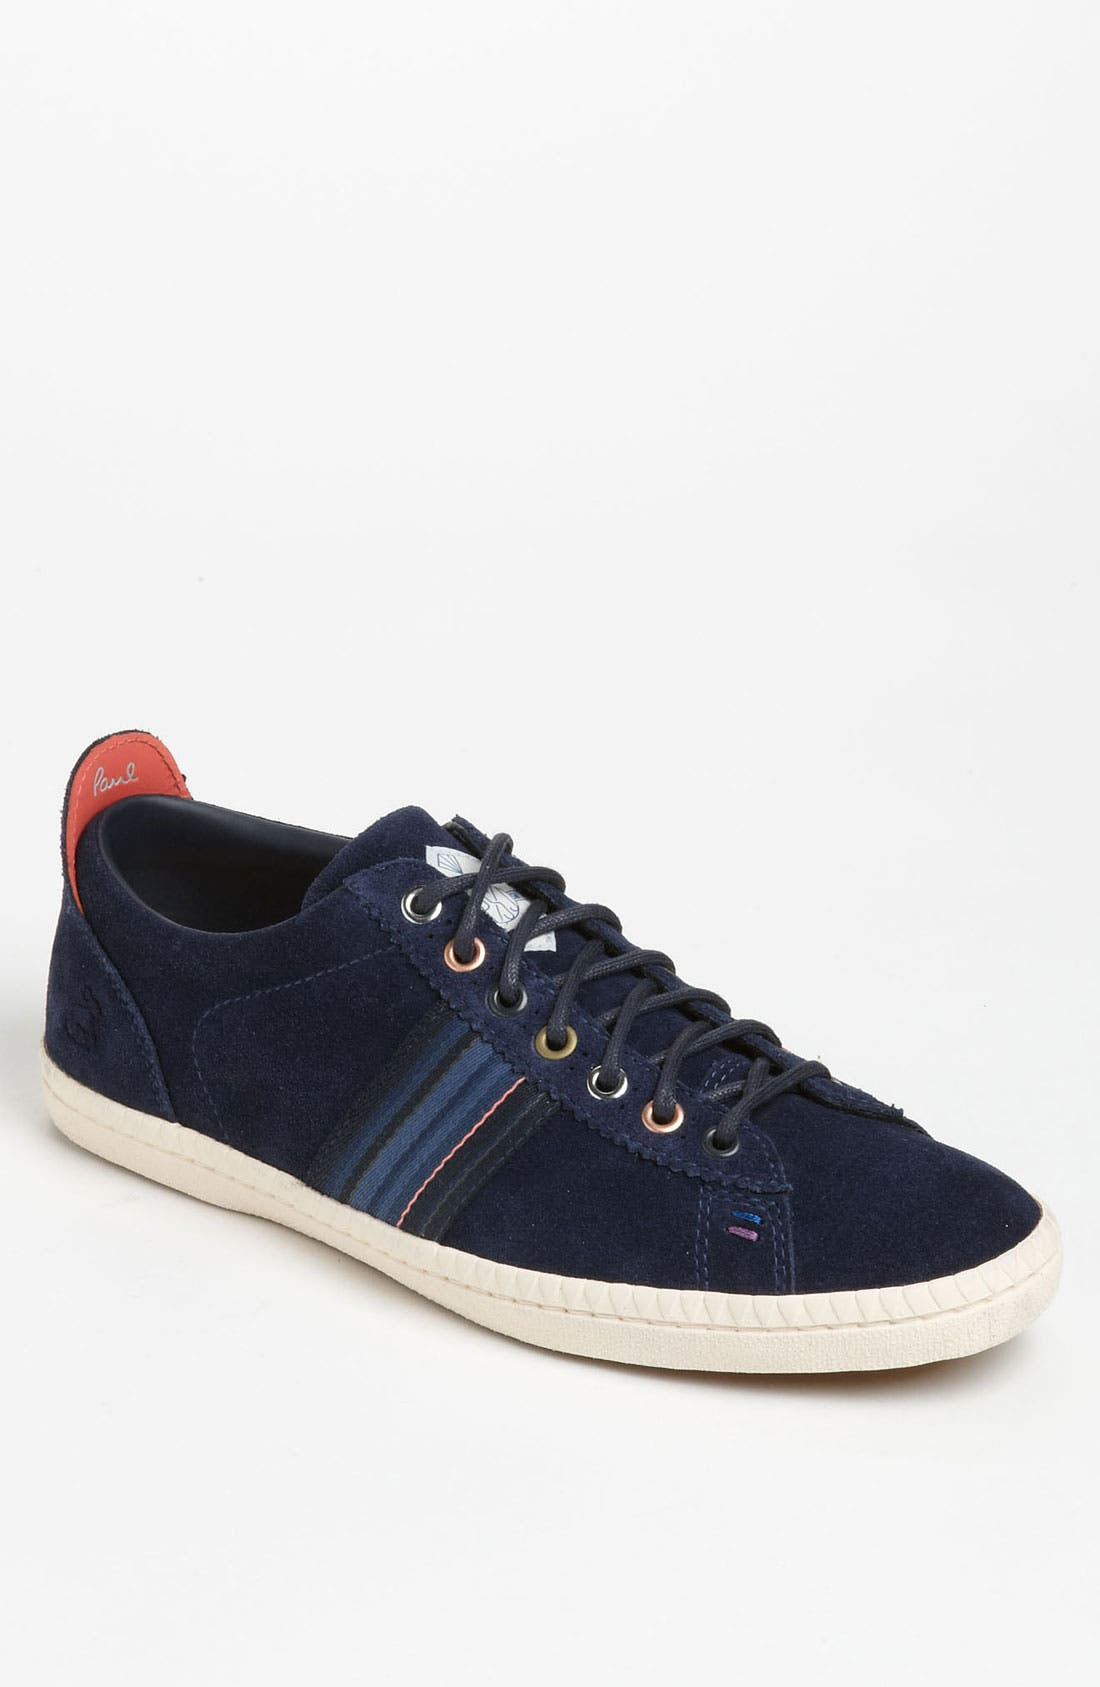 Main Image - Paul Smith 'Osmo' Sneaker